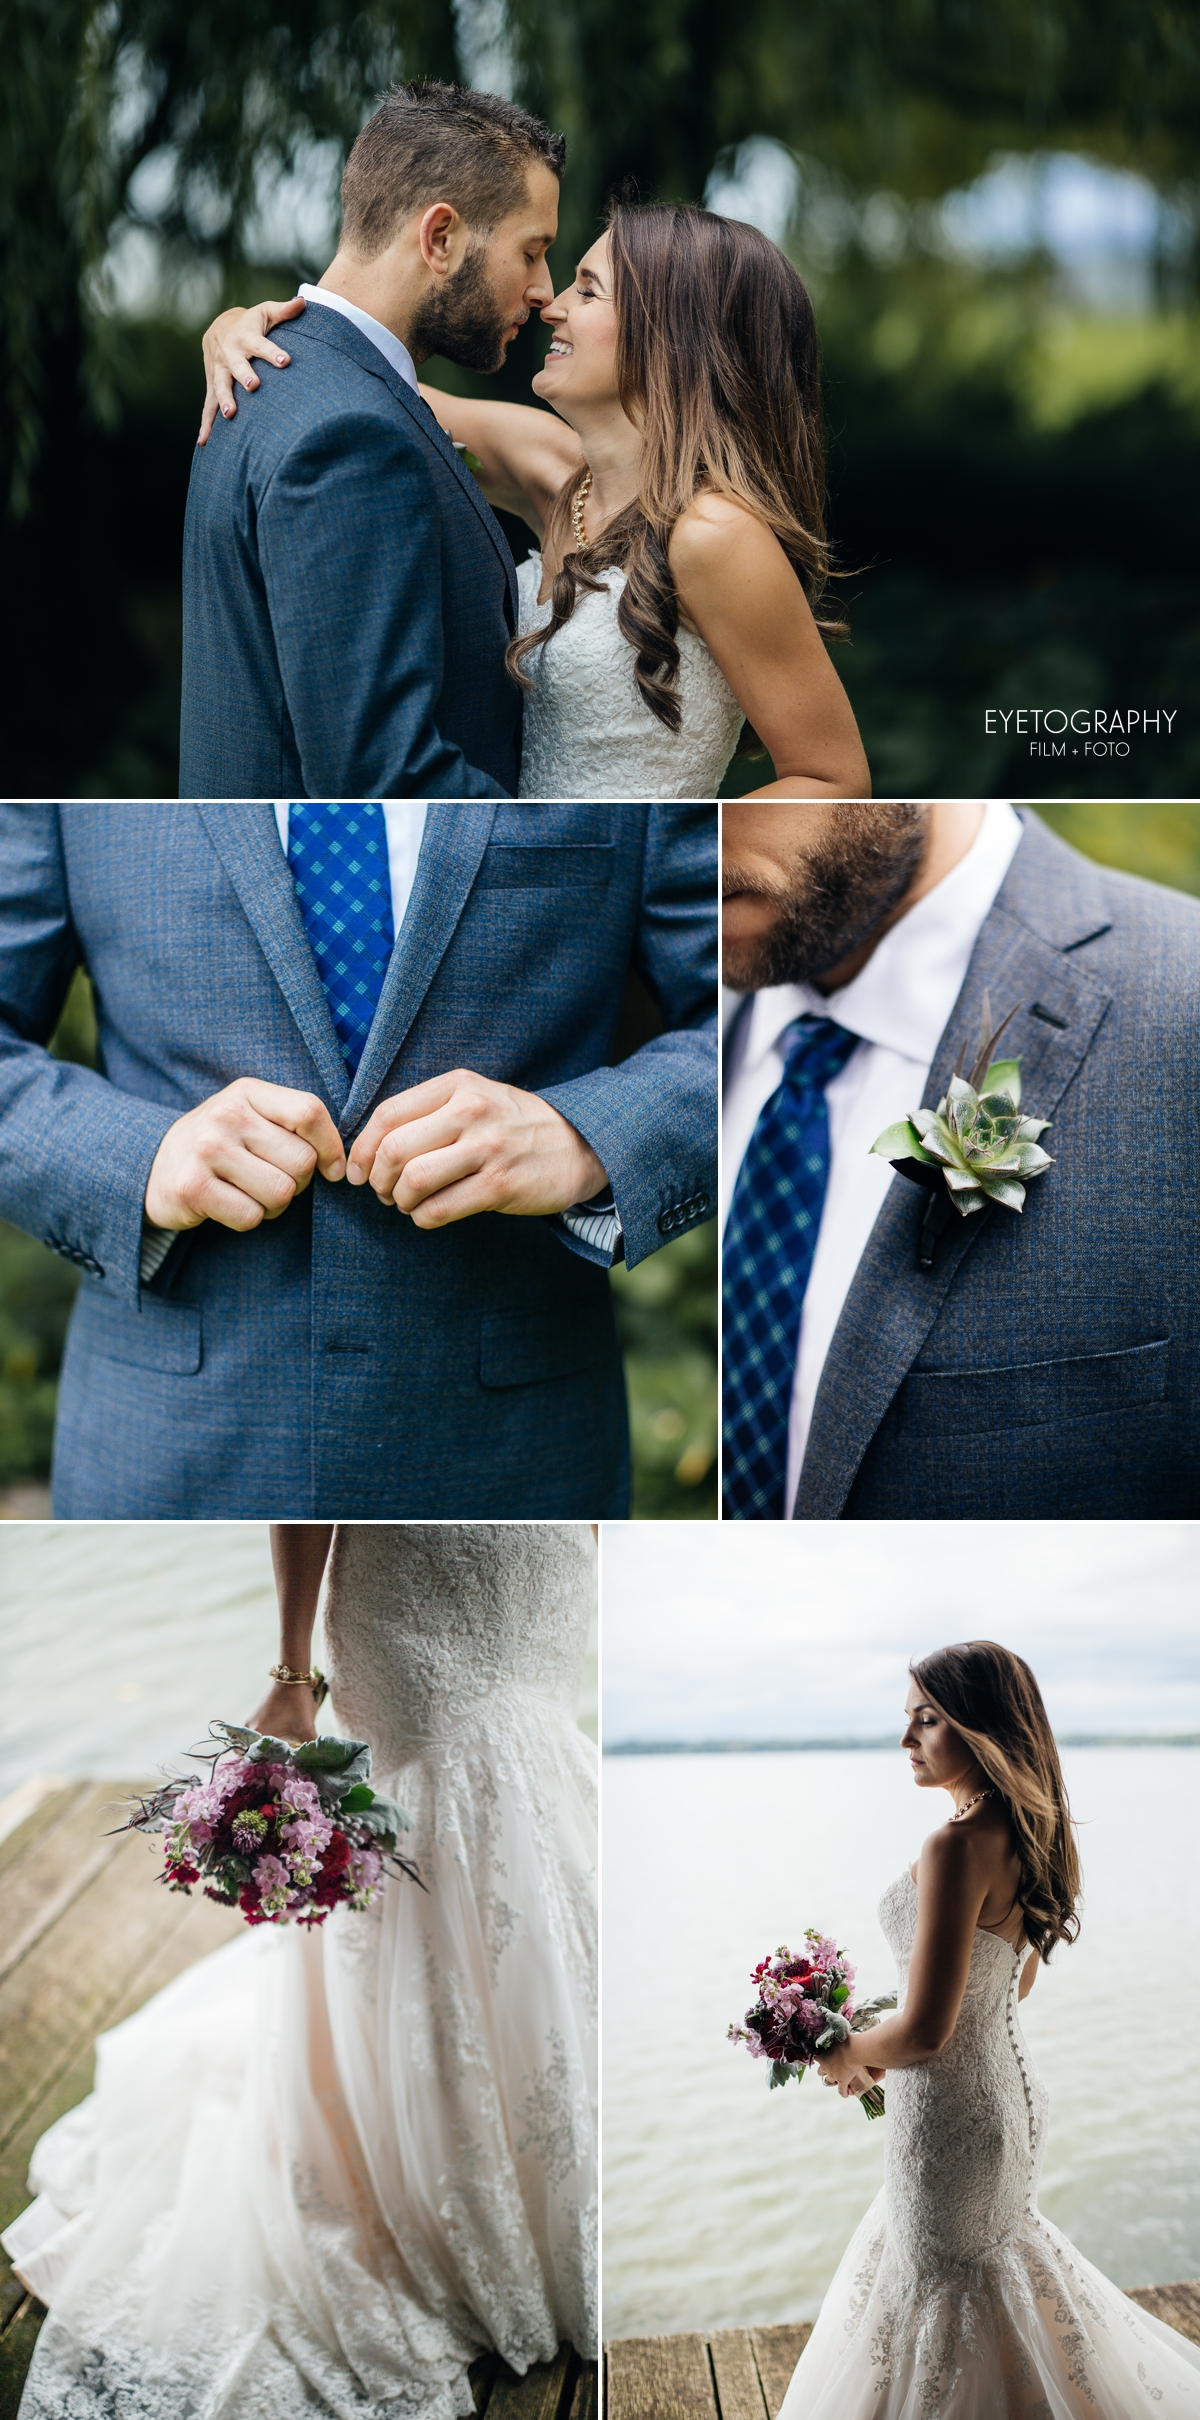 Stout's Island Lodge Wedding Photography | Andrea + Chris | Eyetography Film + Foto | Birchwood, Wisconsin 7